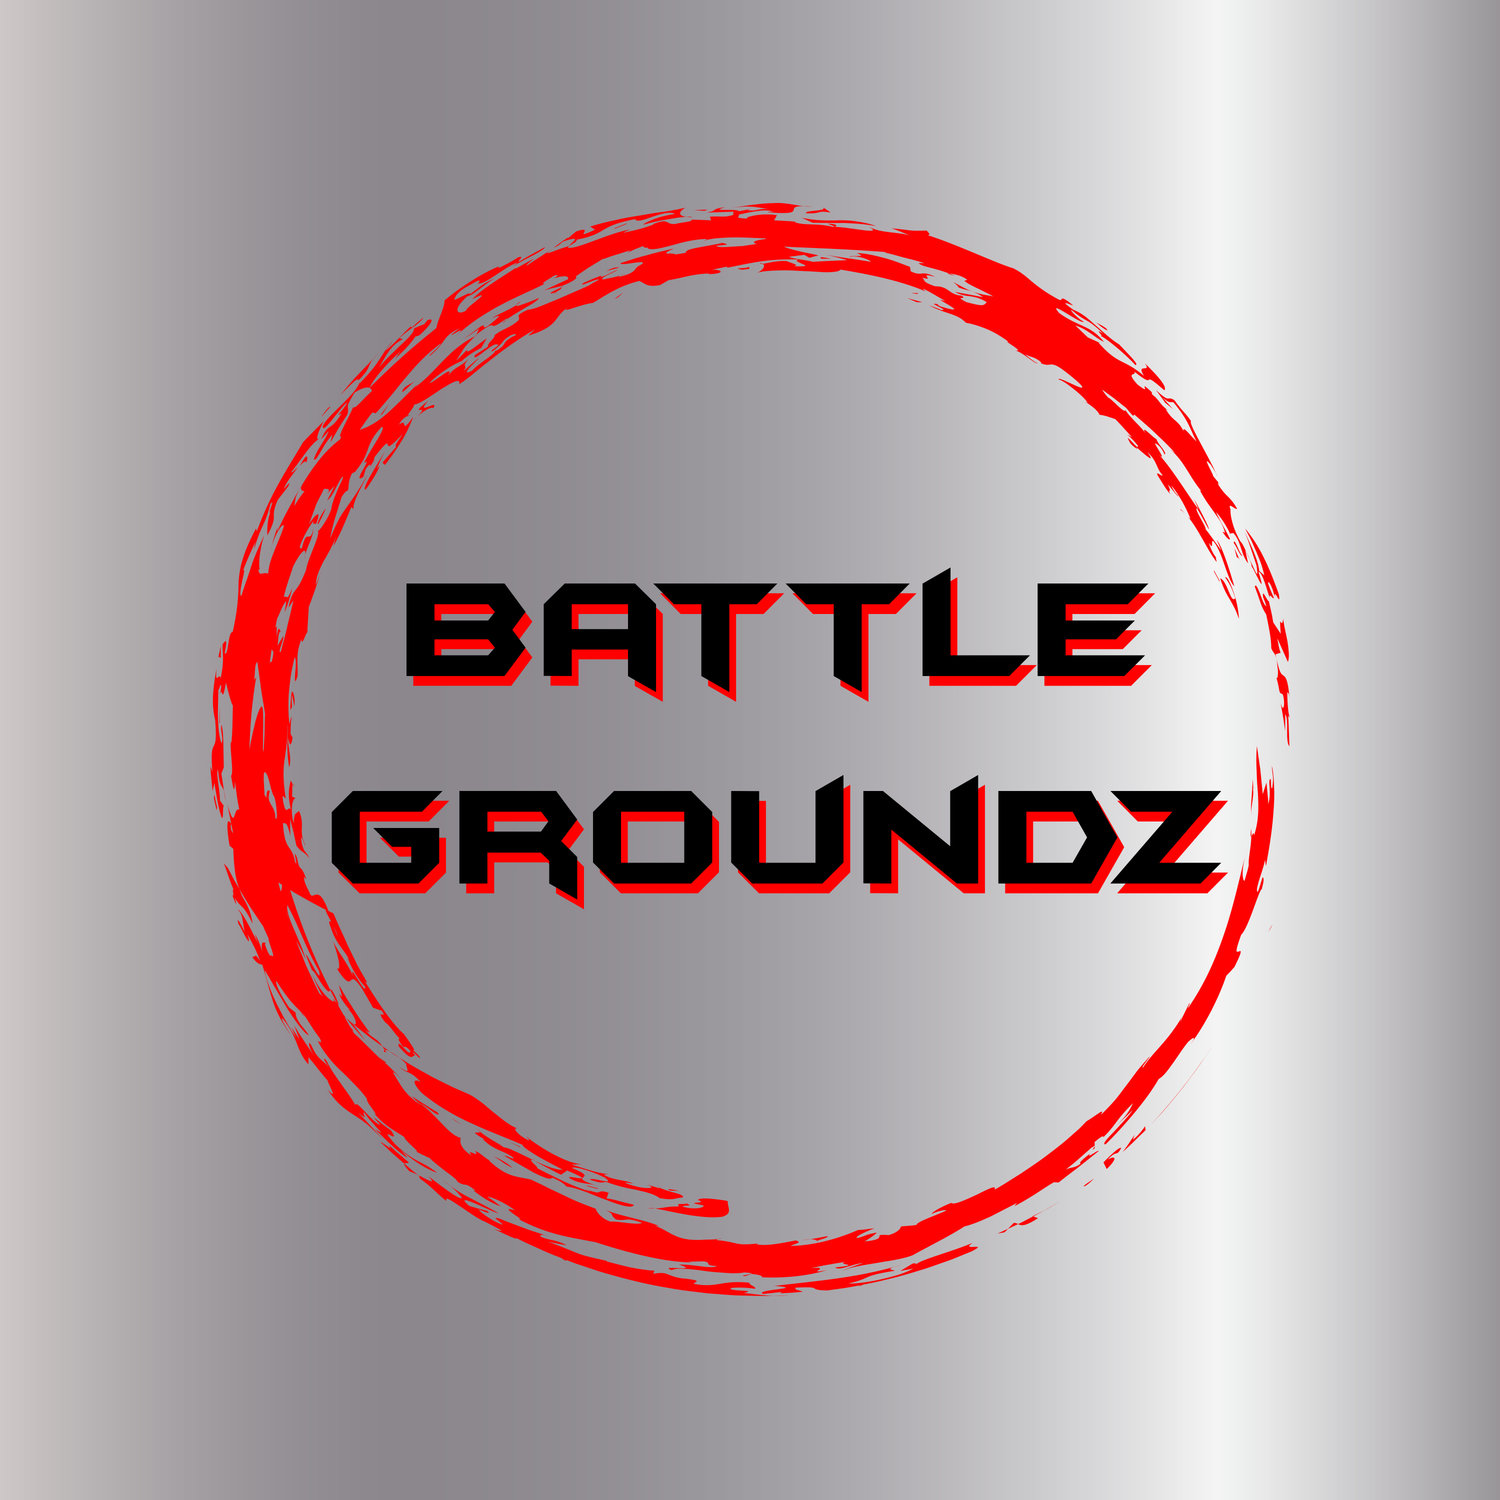 BattleGroundz